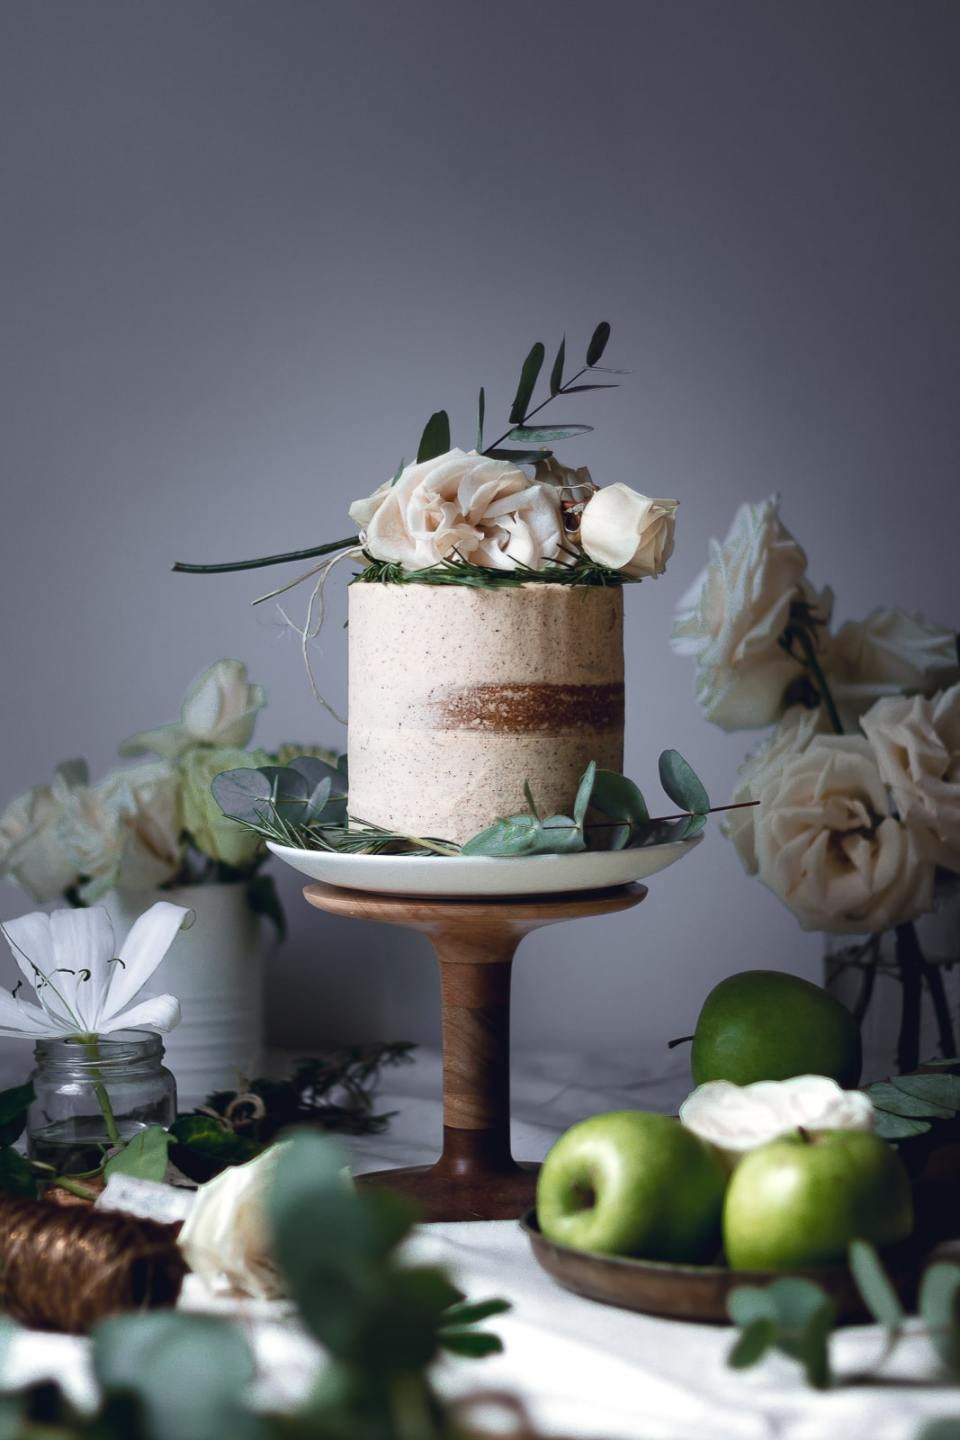 gingerbread-apple-cake-4391